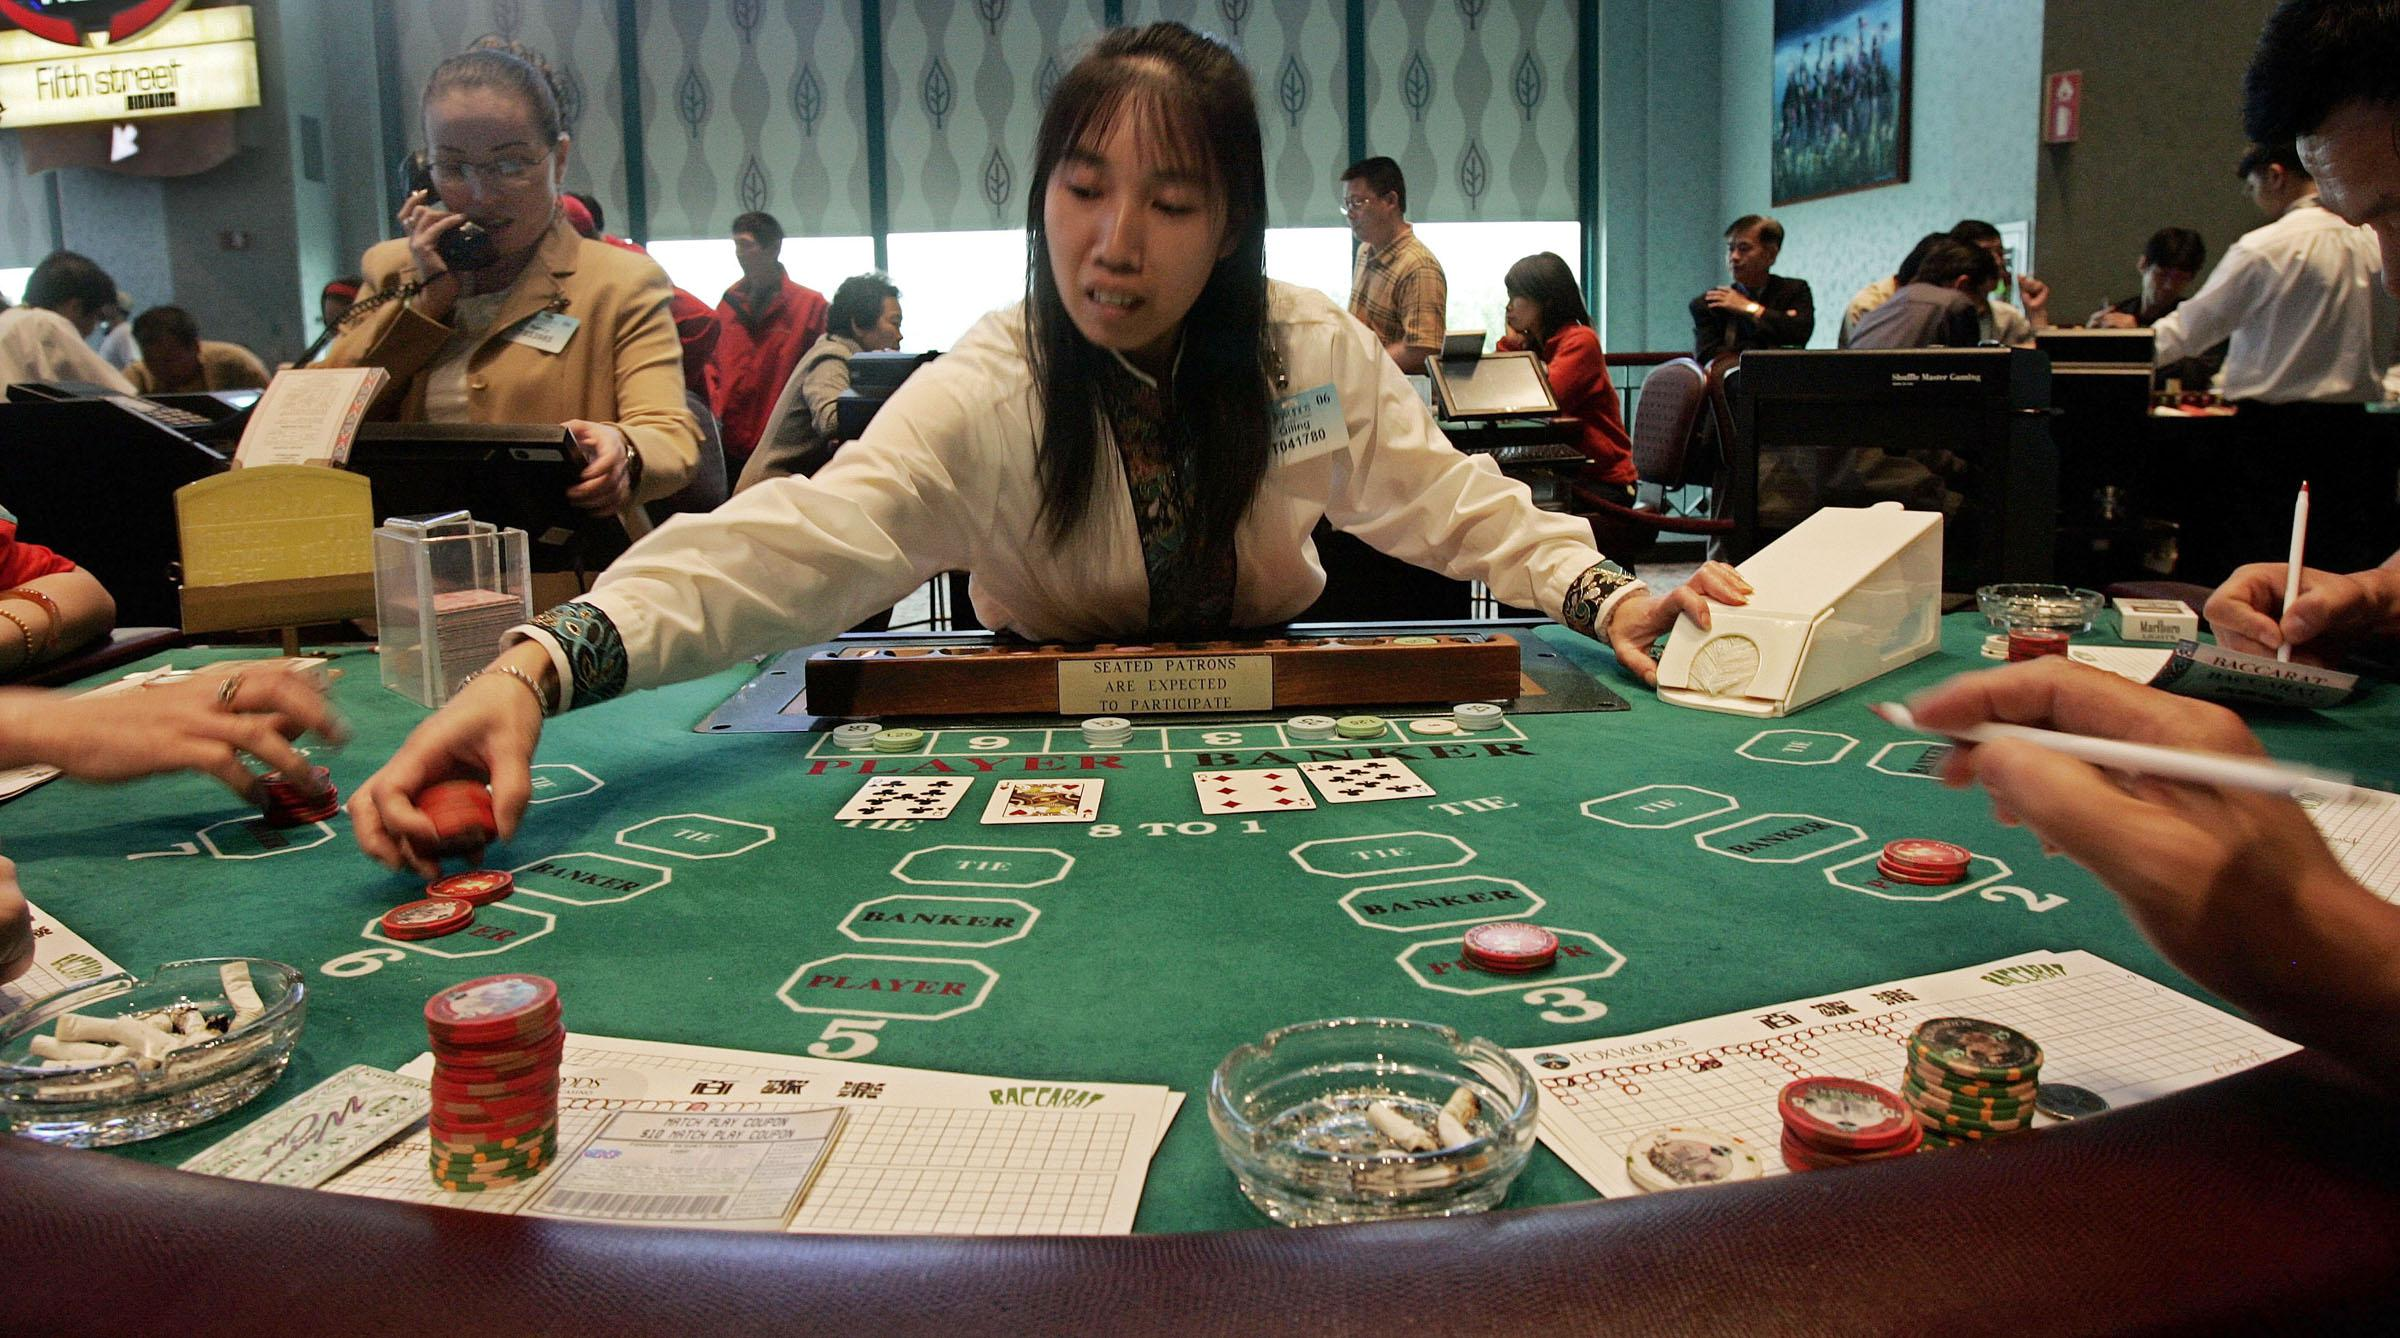 Asian gambling addiction photos 621